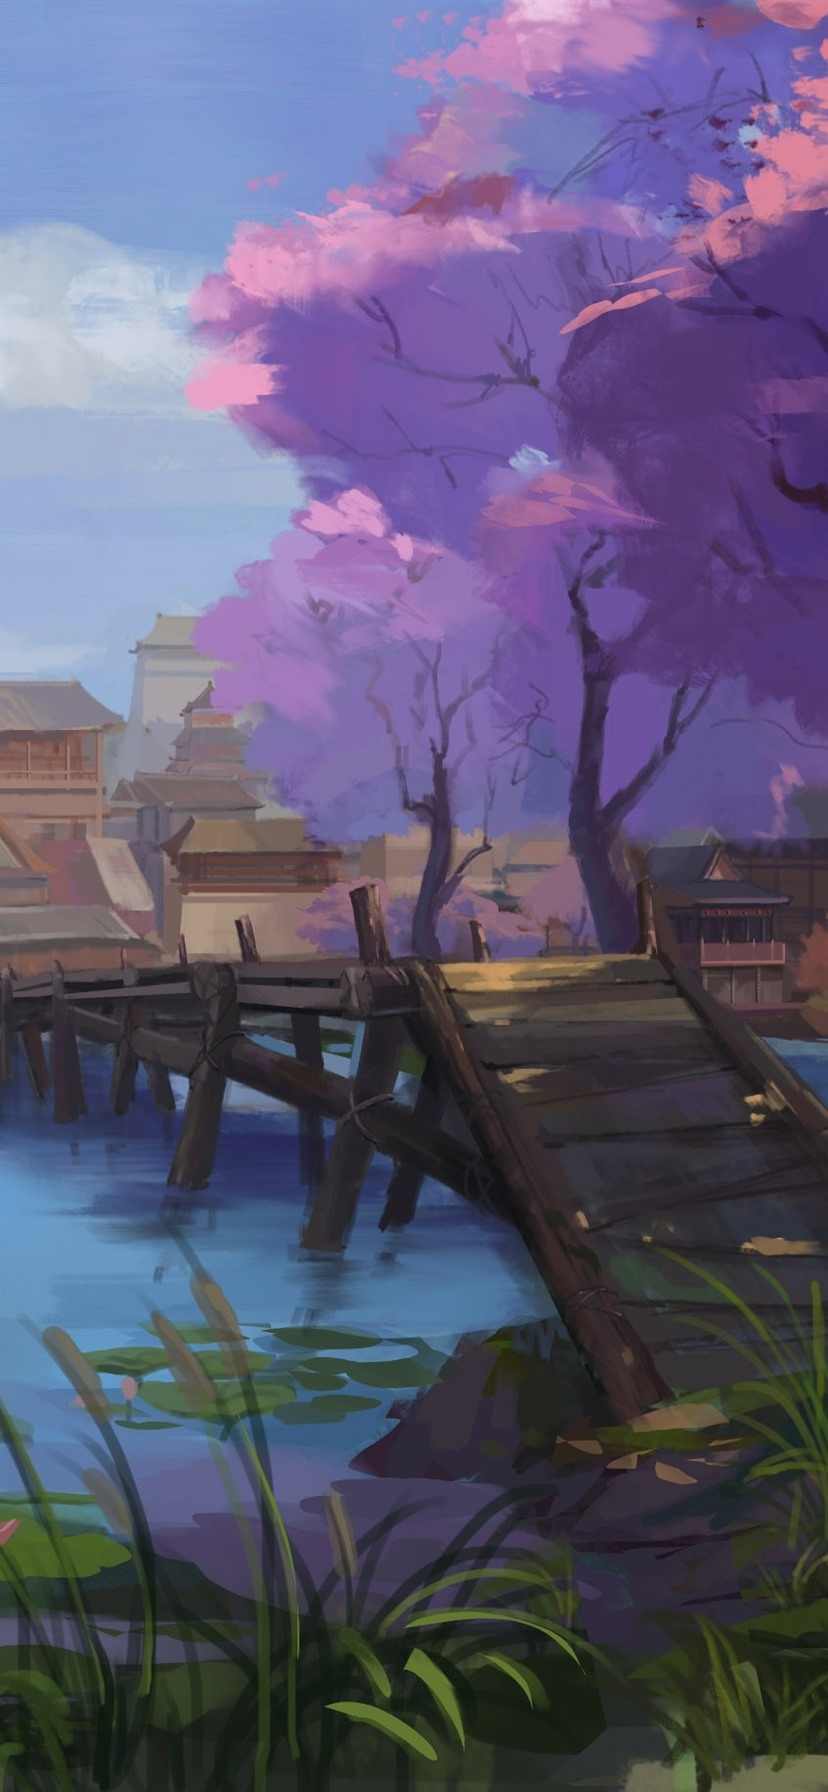 Watercolor Painting China Village Retro Style 828x1792 Iphone 11 Xr Wallpaper Background Picture Image